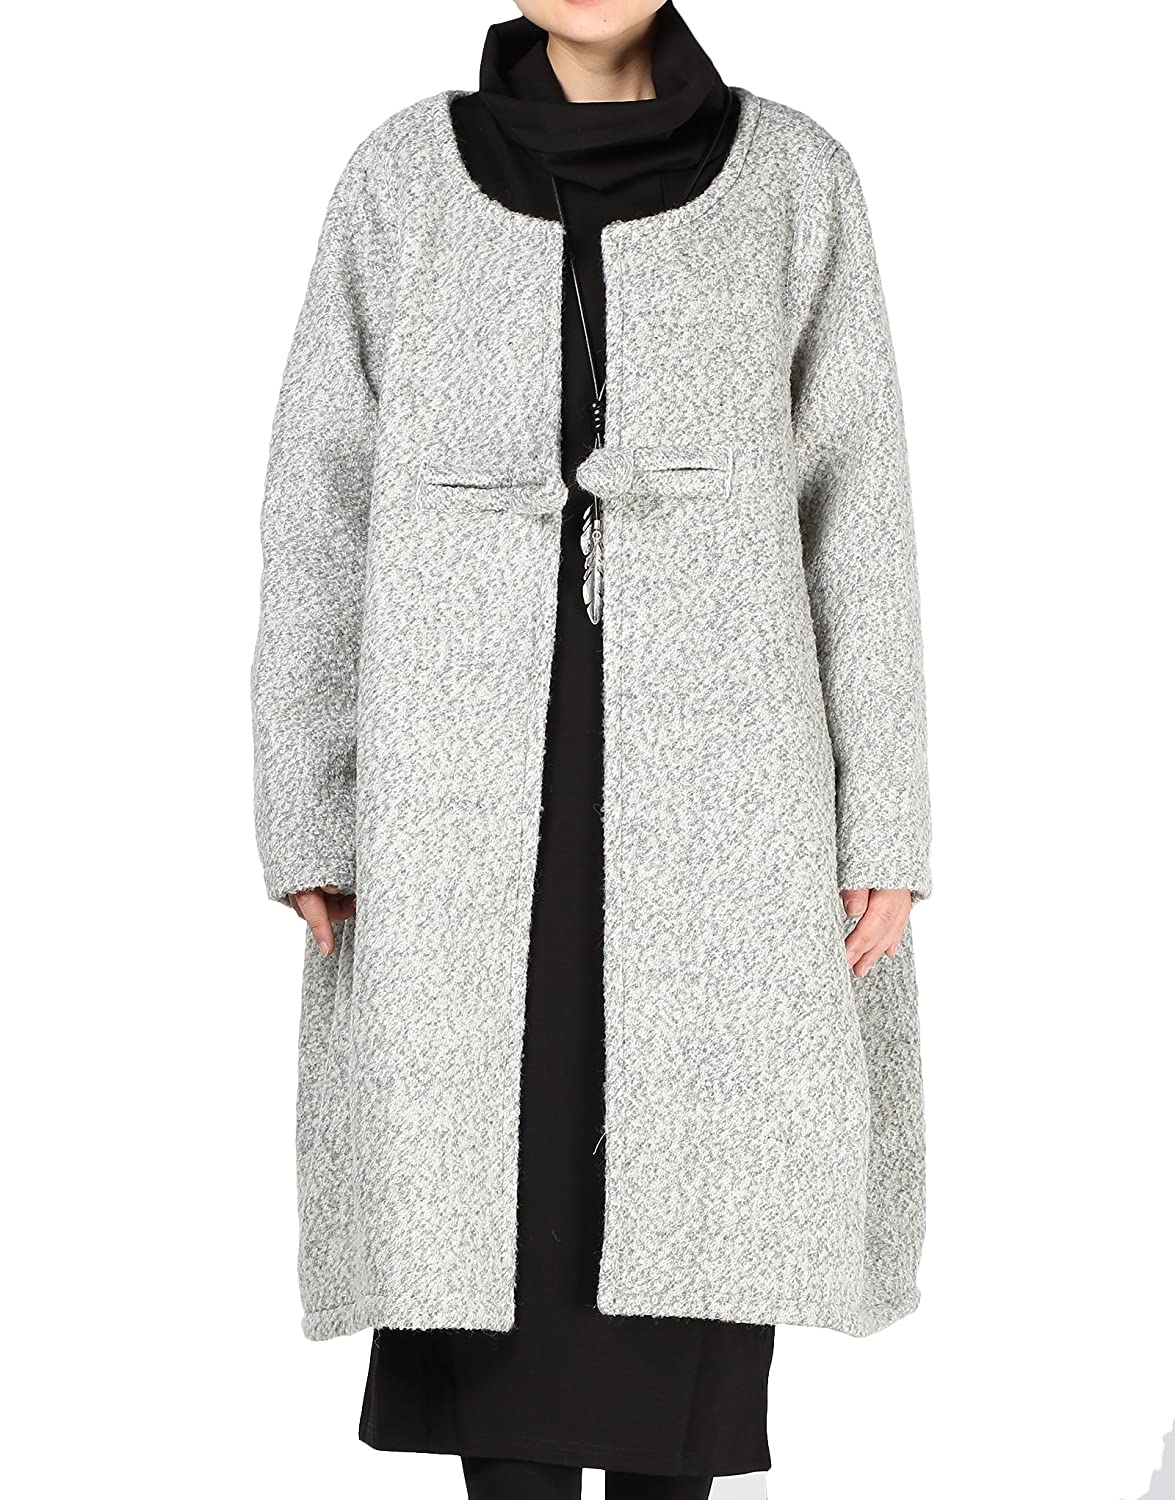 Mordenmiss Women Loose One-Chinese Frog Button Wool Coat CA-LG009